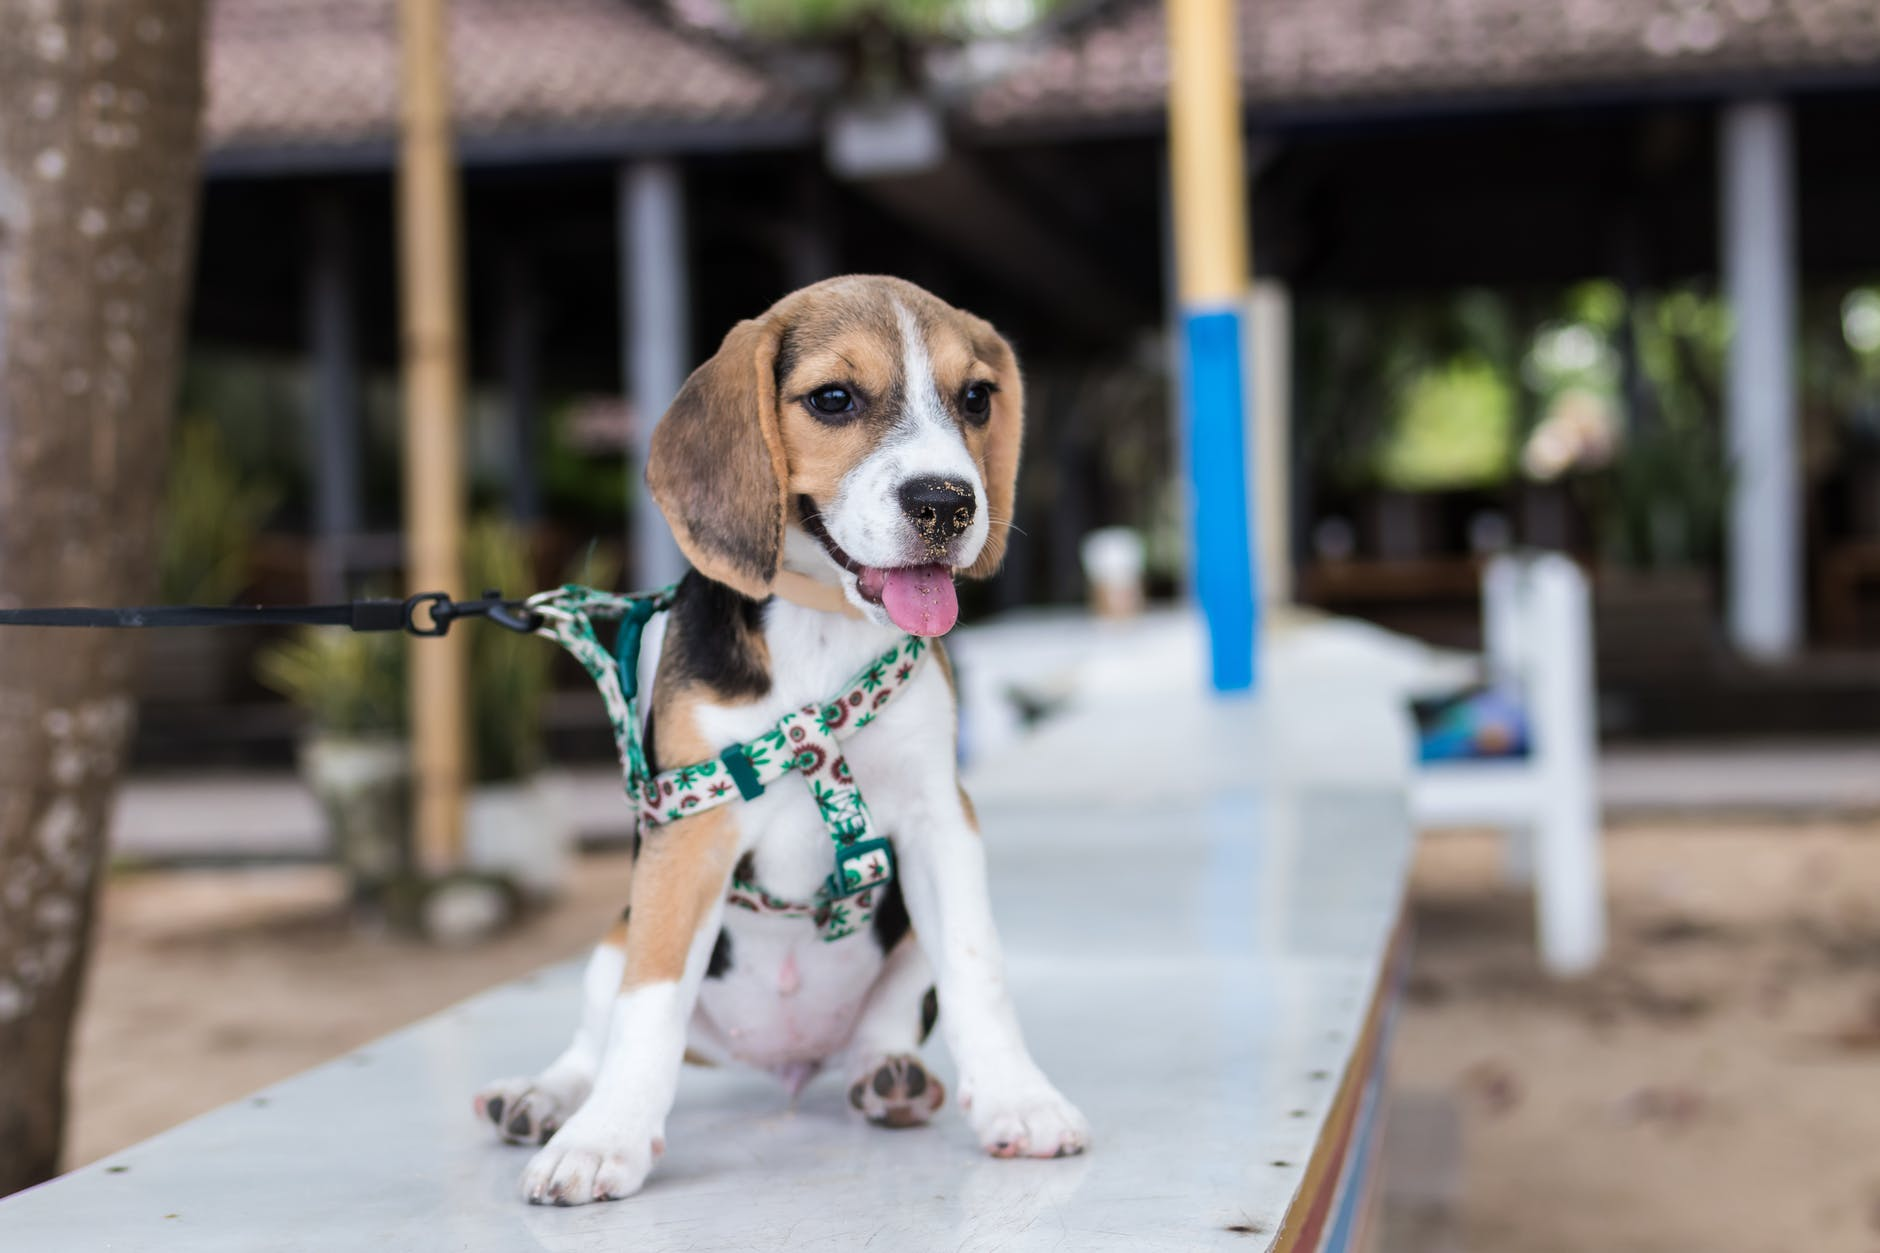 Pic: Artem Bali / https://www.pexels.com/photo/adorable-animal-animal-photography-beagle-452772/